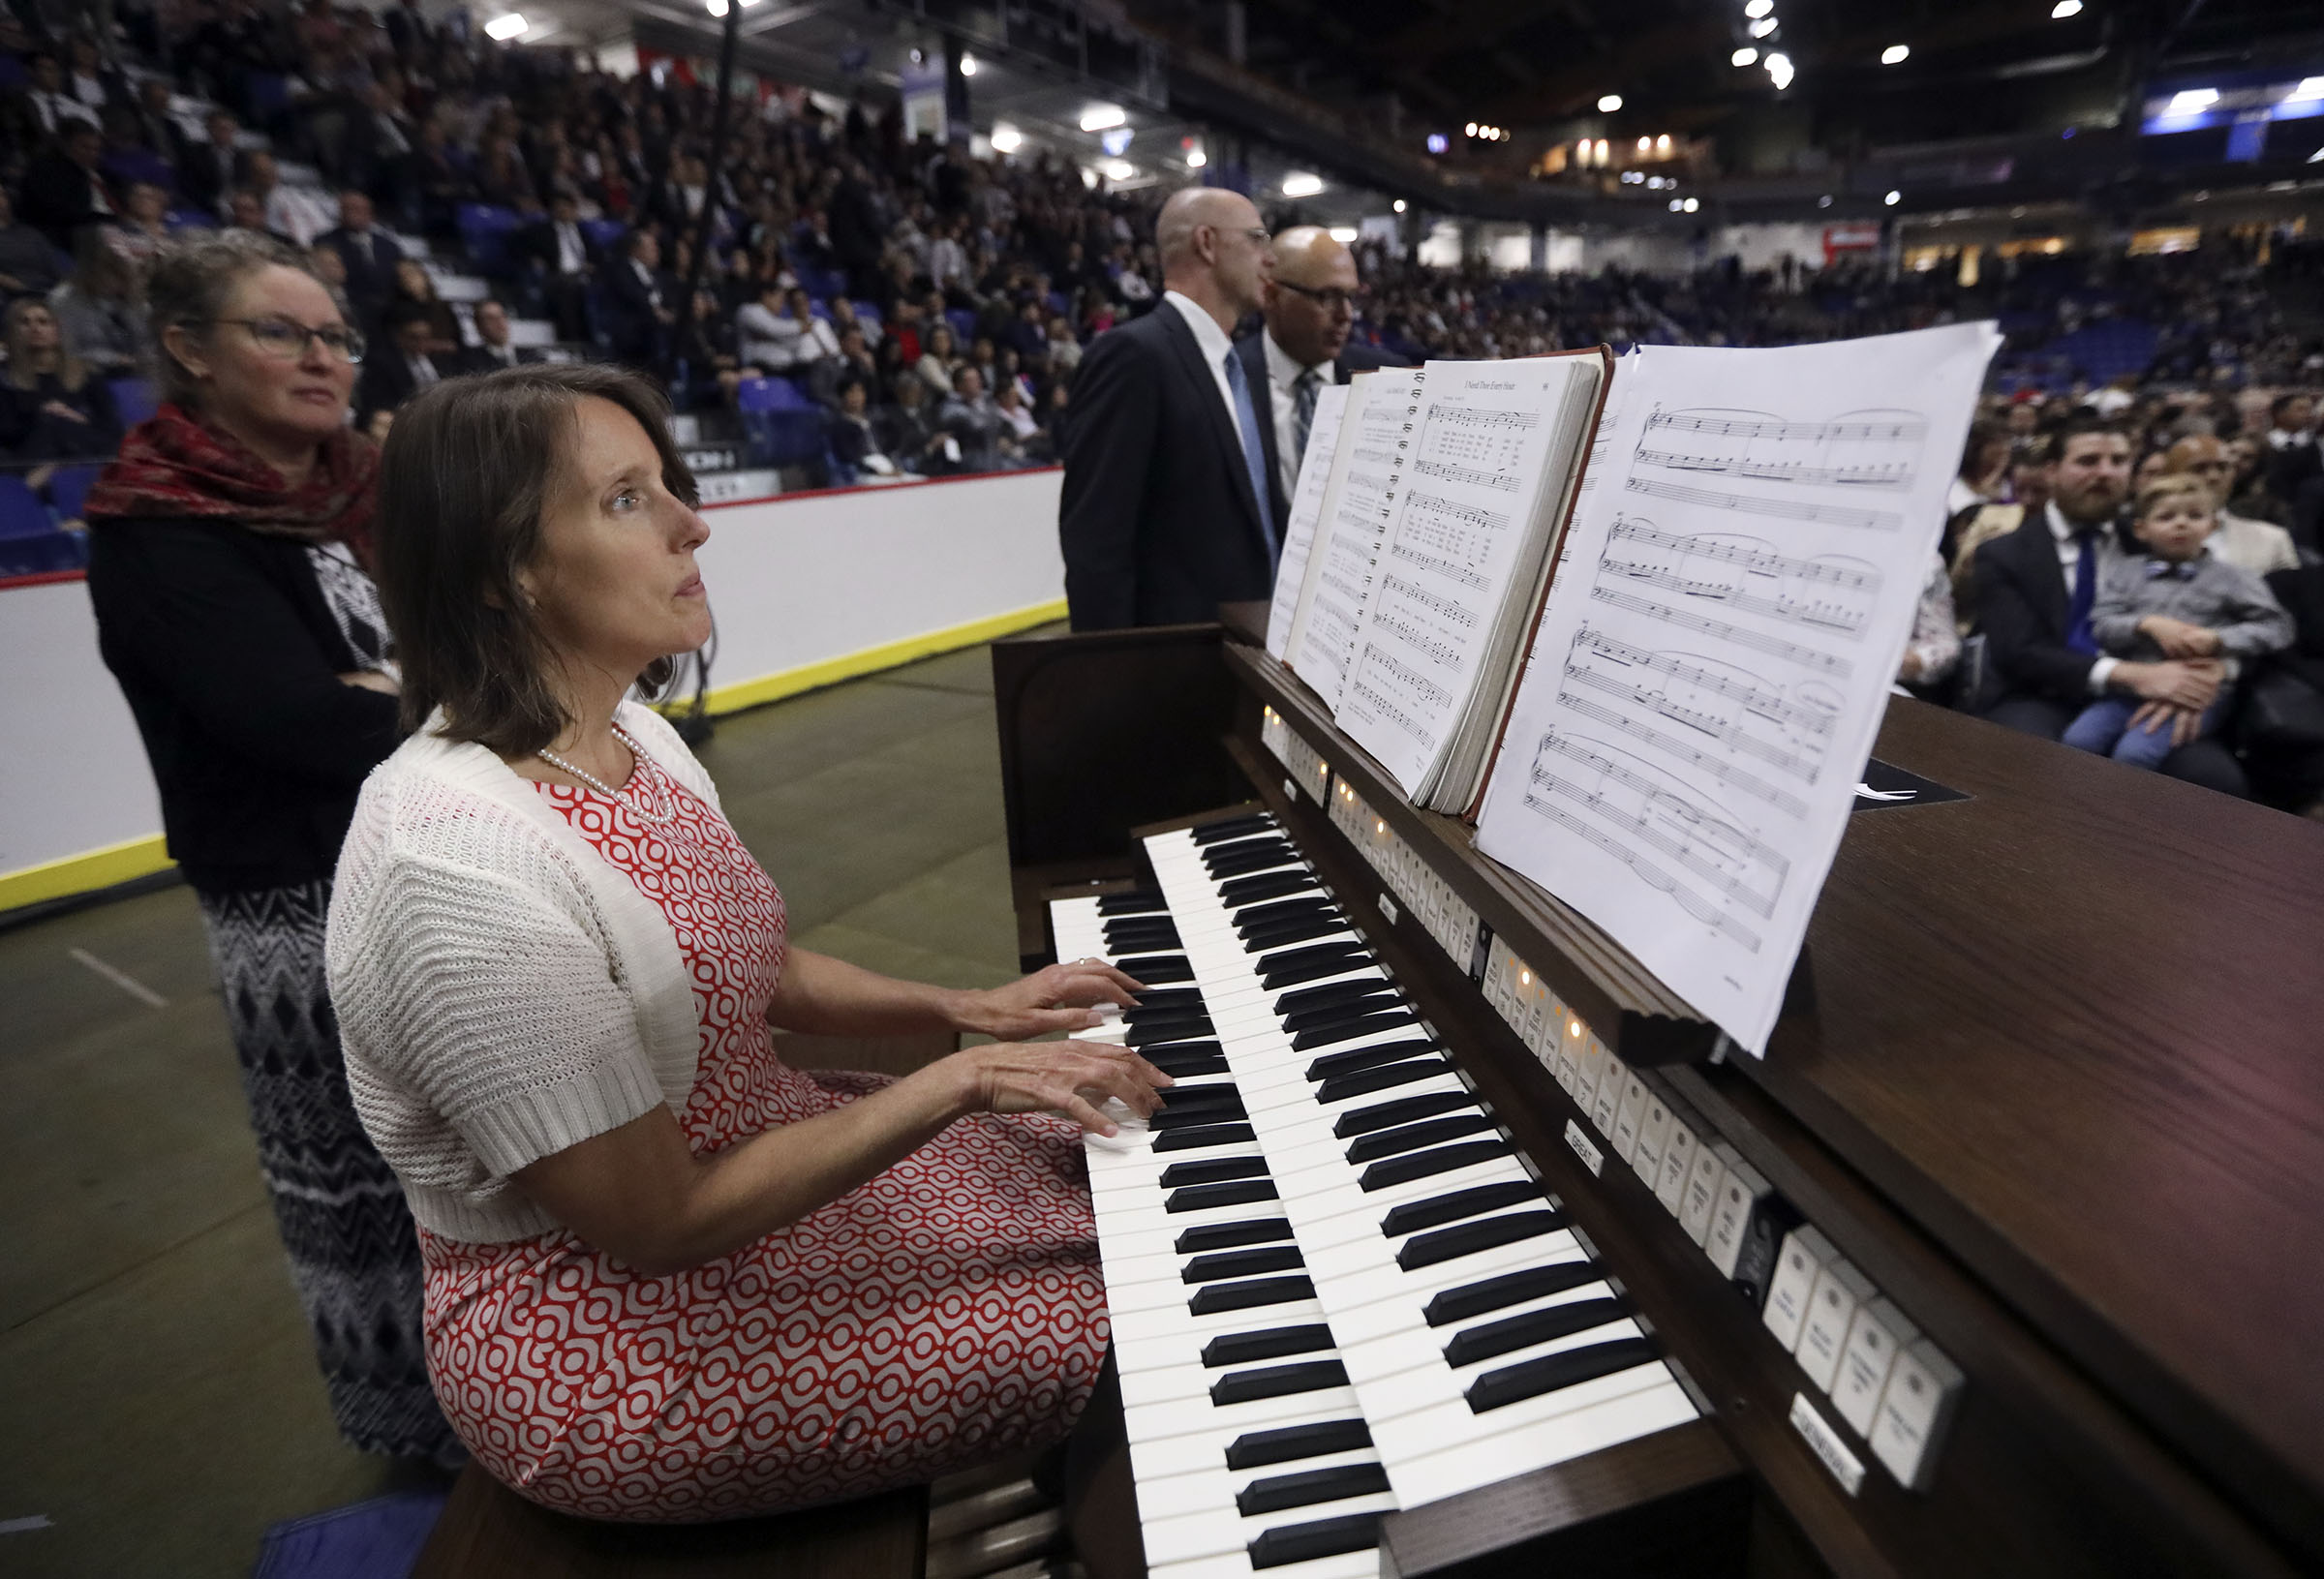 Dana Porowski plays the organ before President Russell M. Nelson of The Church of Jesus Christ of Latter-day Saints speaks at the Langley Events Center in Langley, British Columbia, on Sunday, Sept. 16, 2018.